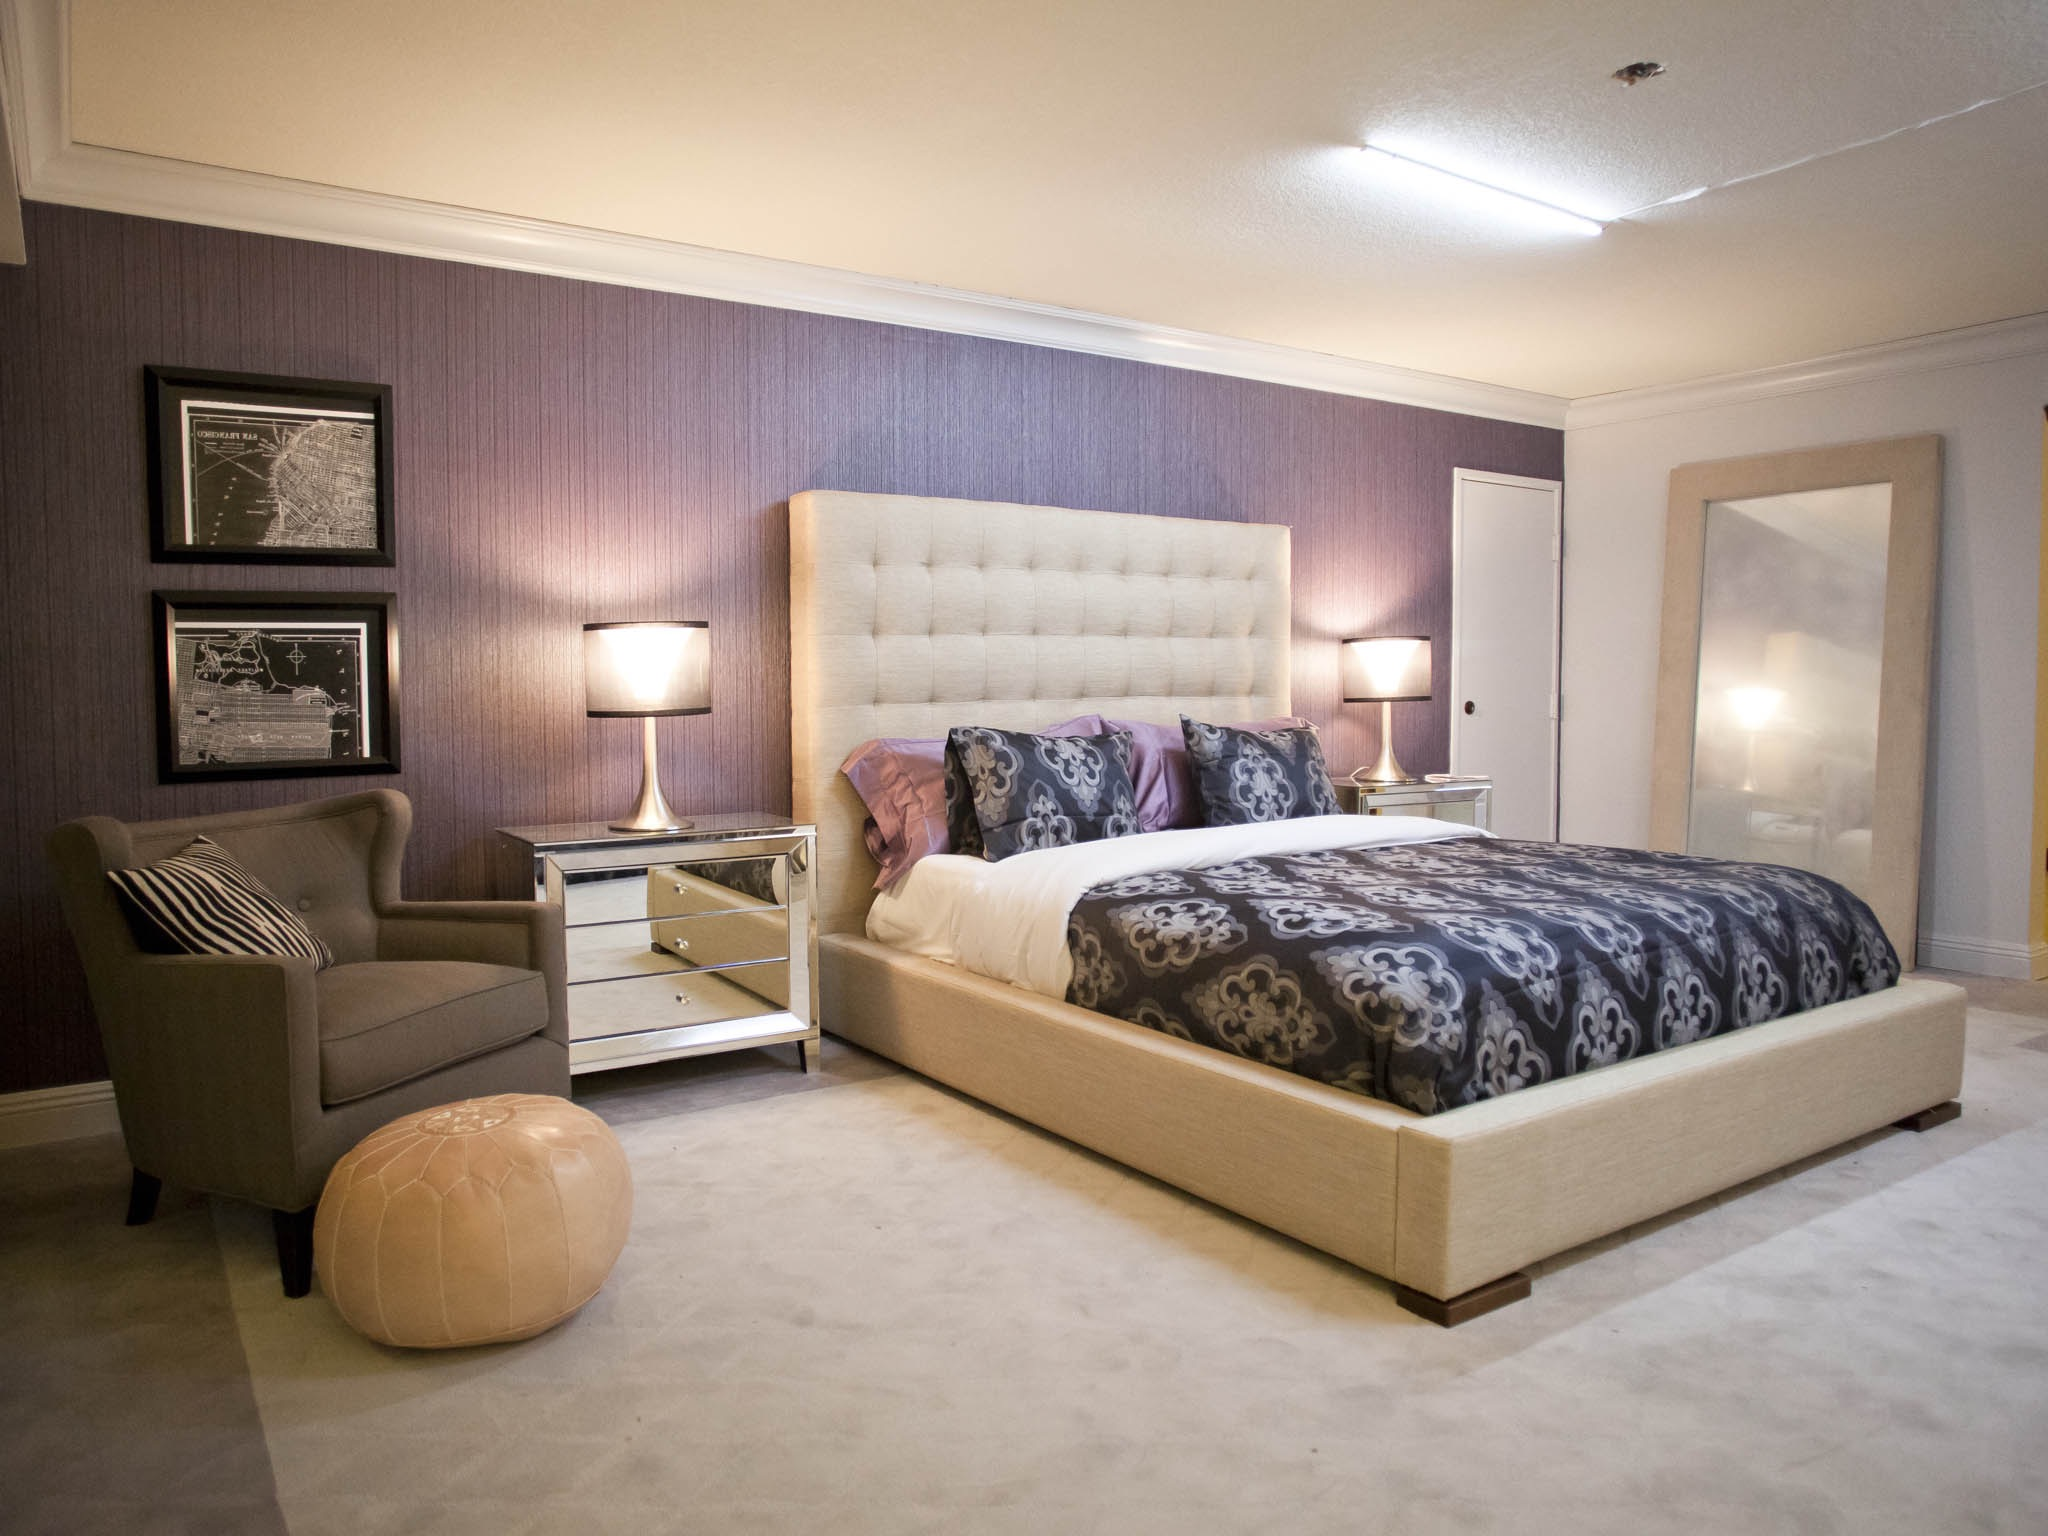 modern bedroom paint 20 lovely bedroom paint and color ideas 16569 bedroom ideas 12502